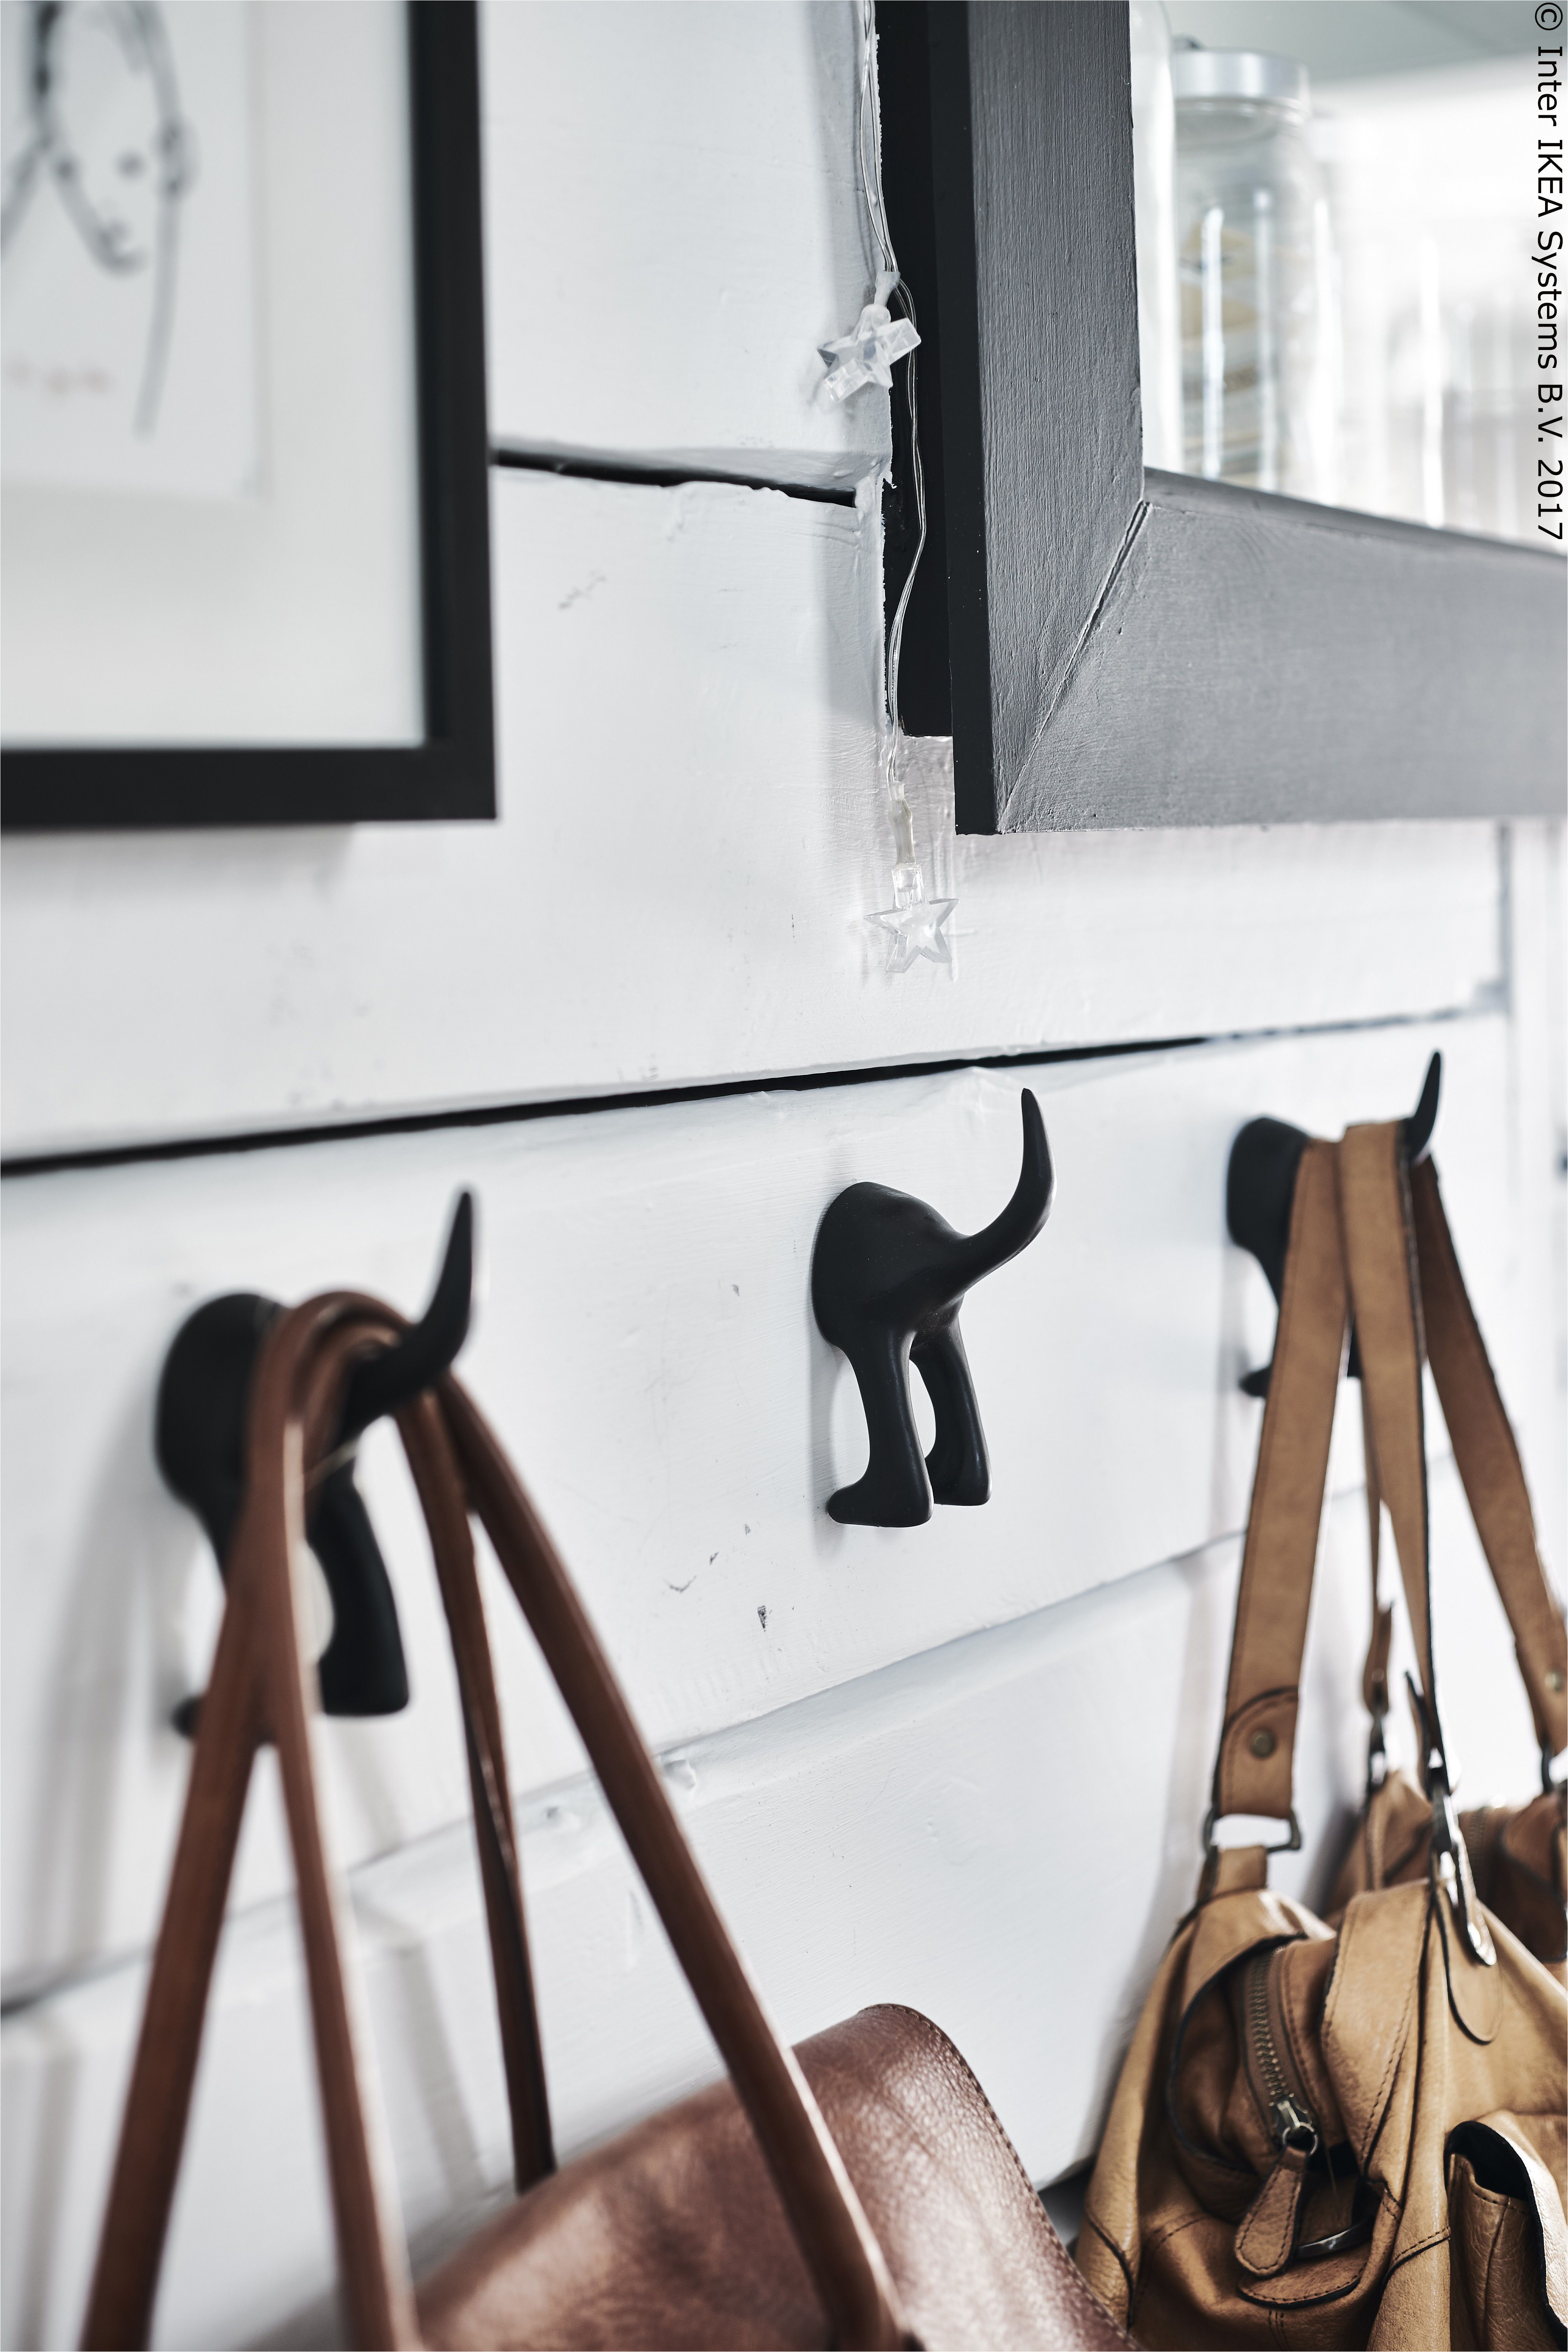 chopping boards hanging on a rail in a kitchen